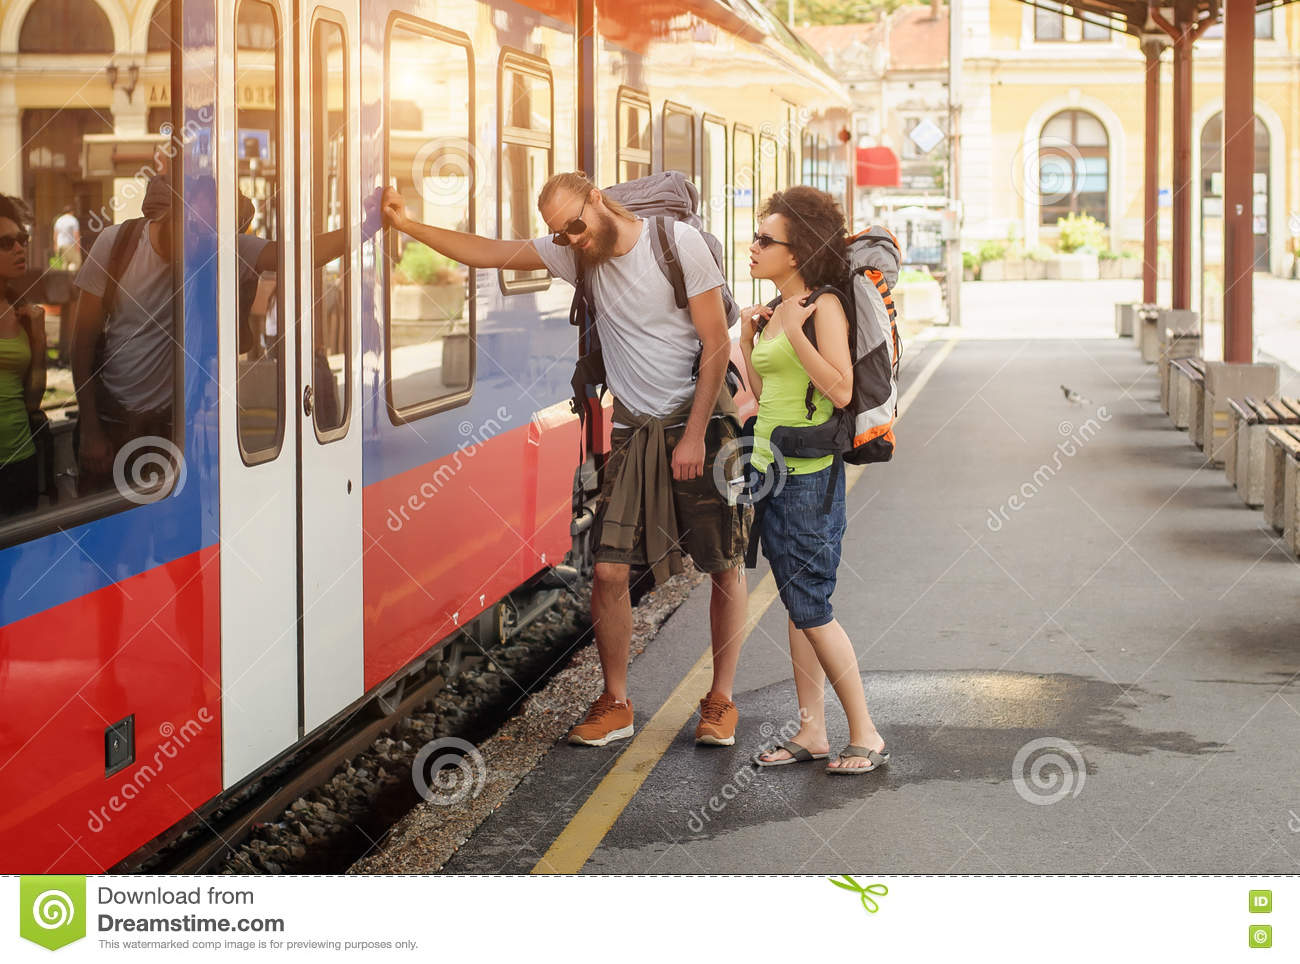 A couple of backpacker tourists waiting to board a train